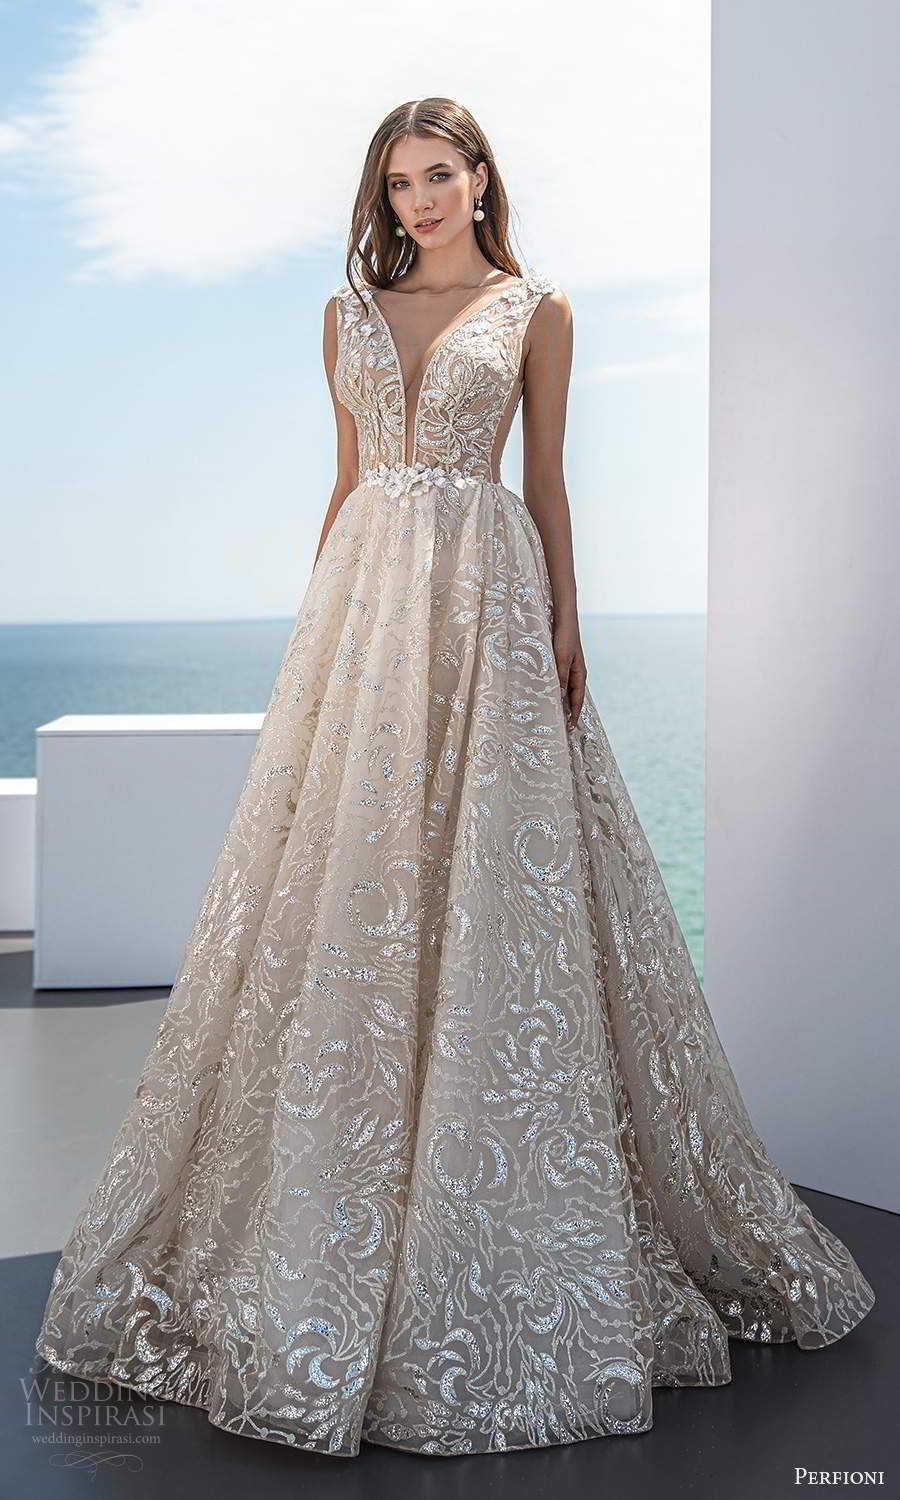 perfioni 2021 bridal sleeveless thick straps plunging v neckline fully embellished glitzy a line ball gown wedding dress chapel train champagne (19) mv